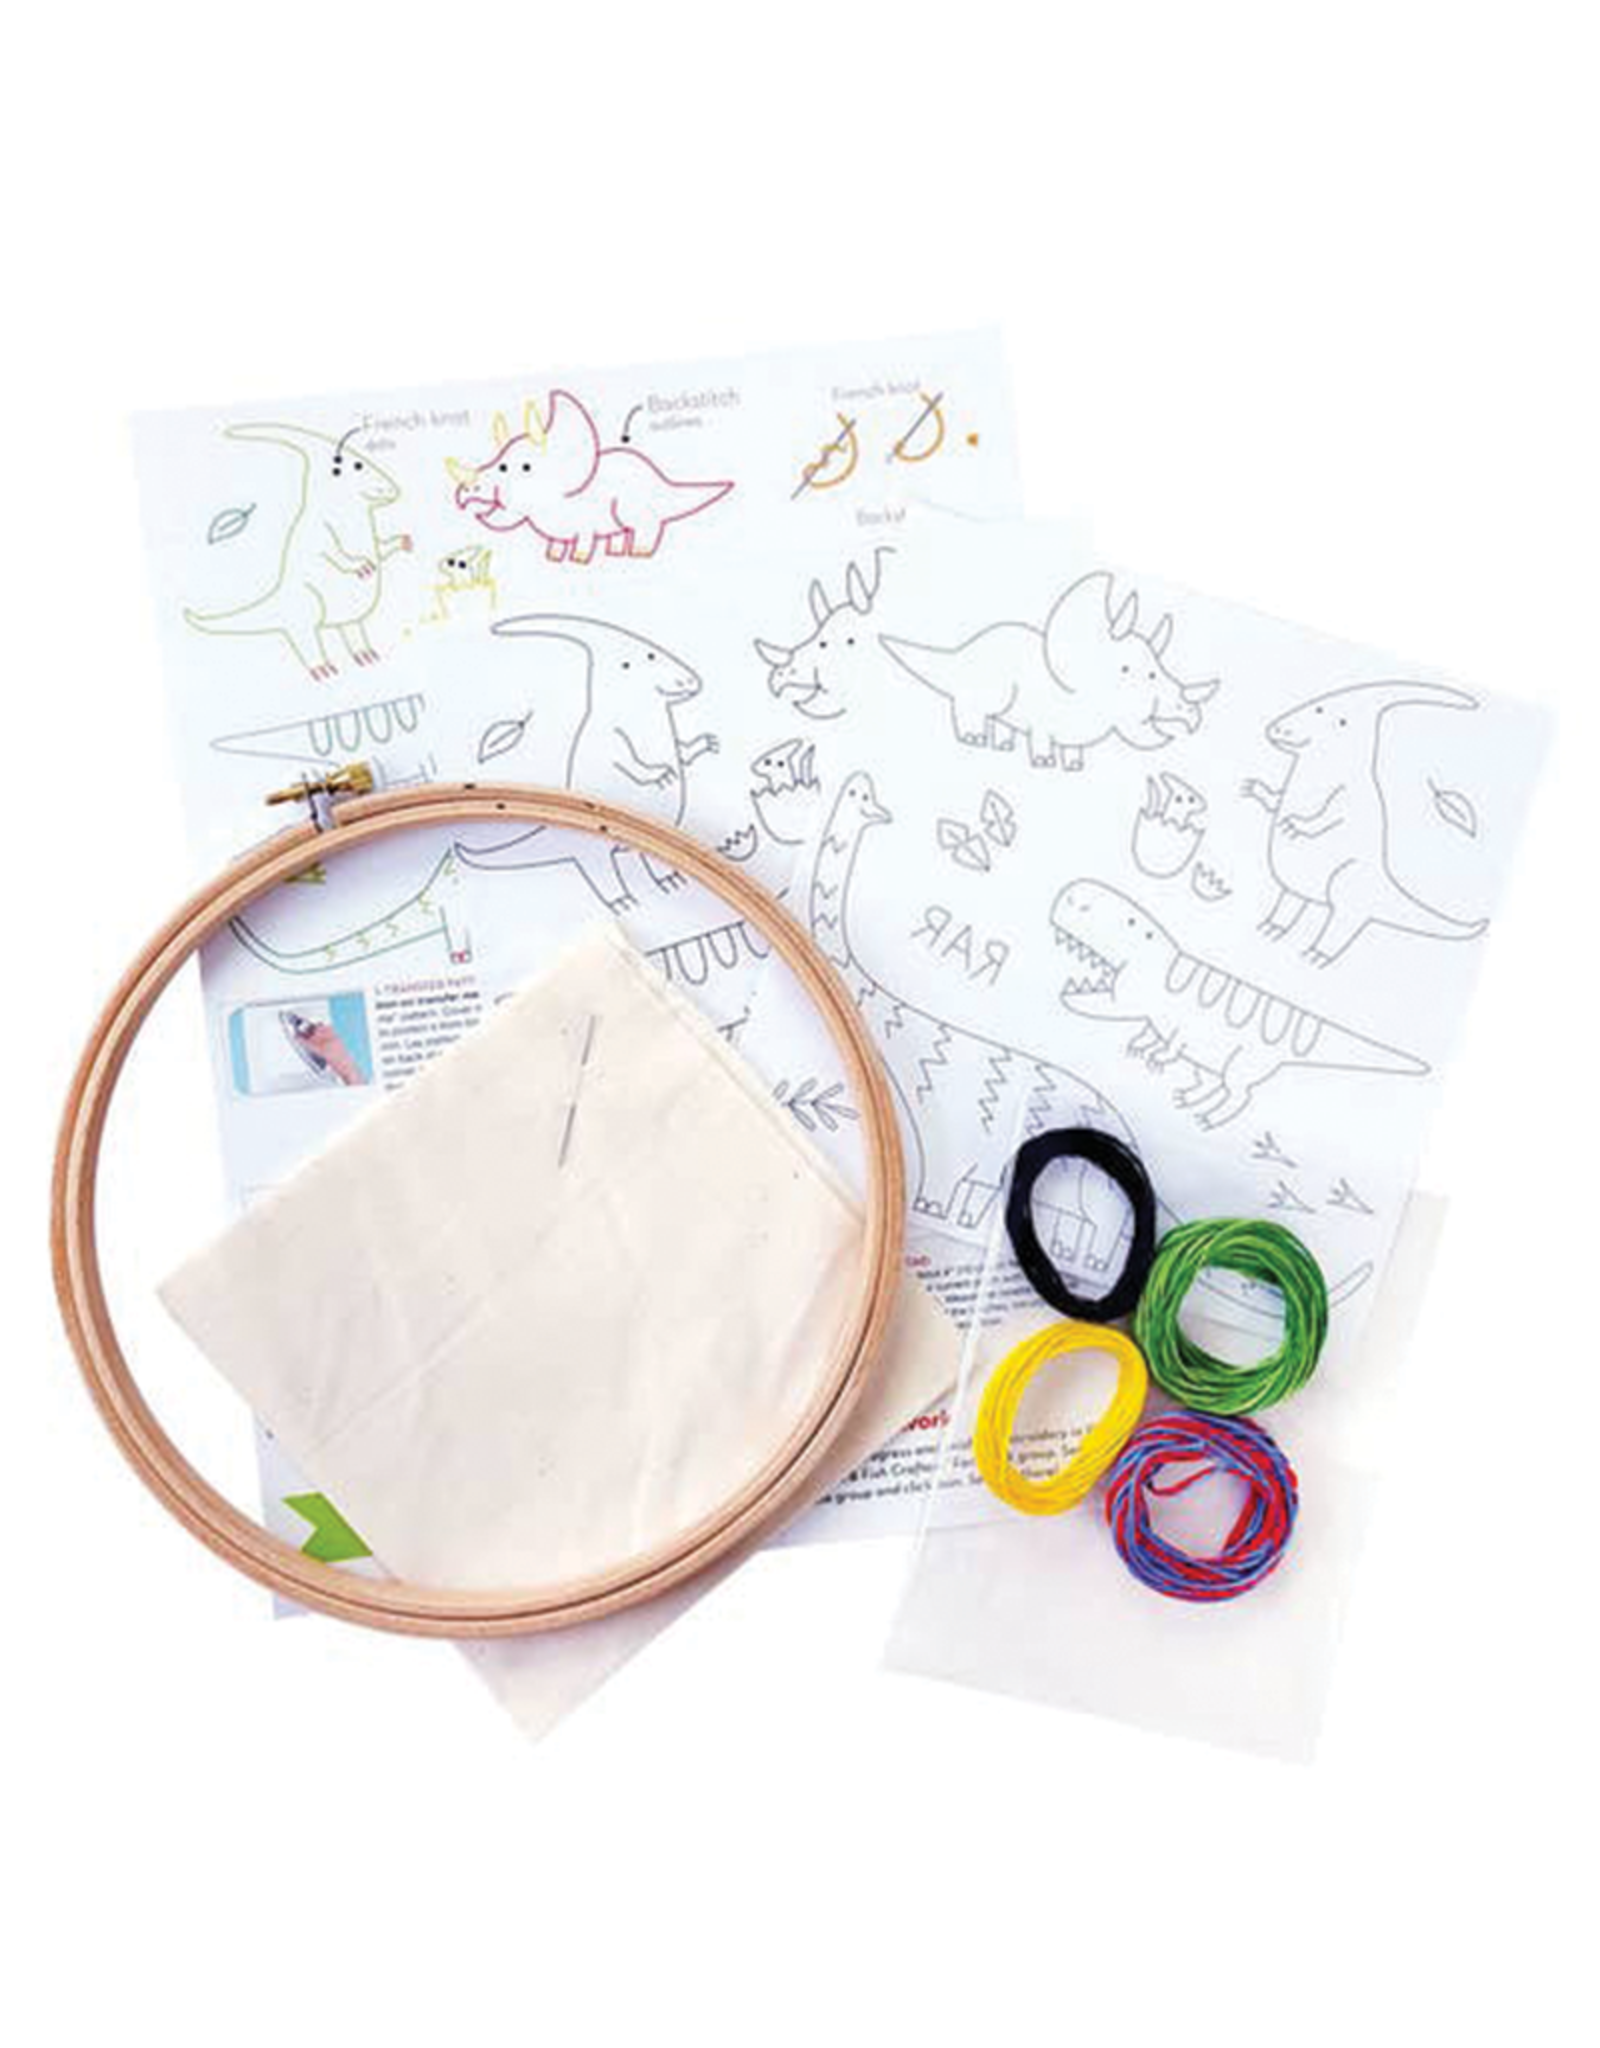 Penguin and Fish Dino Pals Embroidery Kit for Beginners